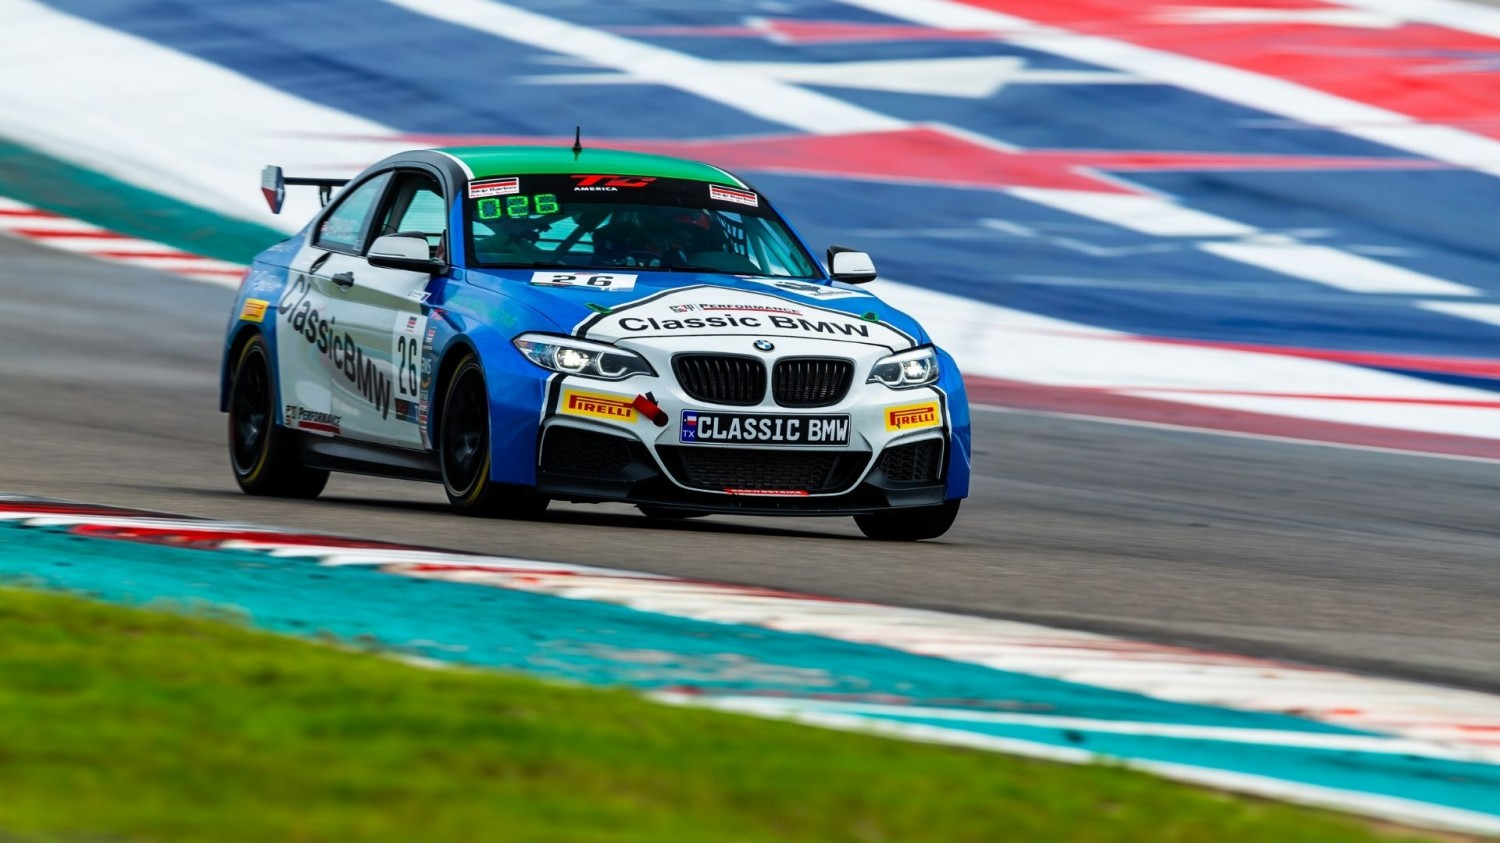 Ruud, BMW Swim to the Top of the Timesheets in Wet Practice 2